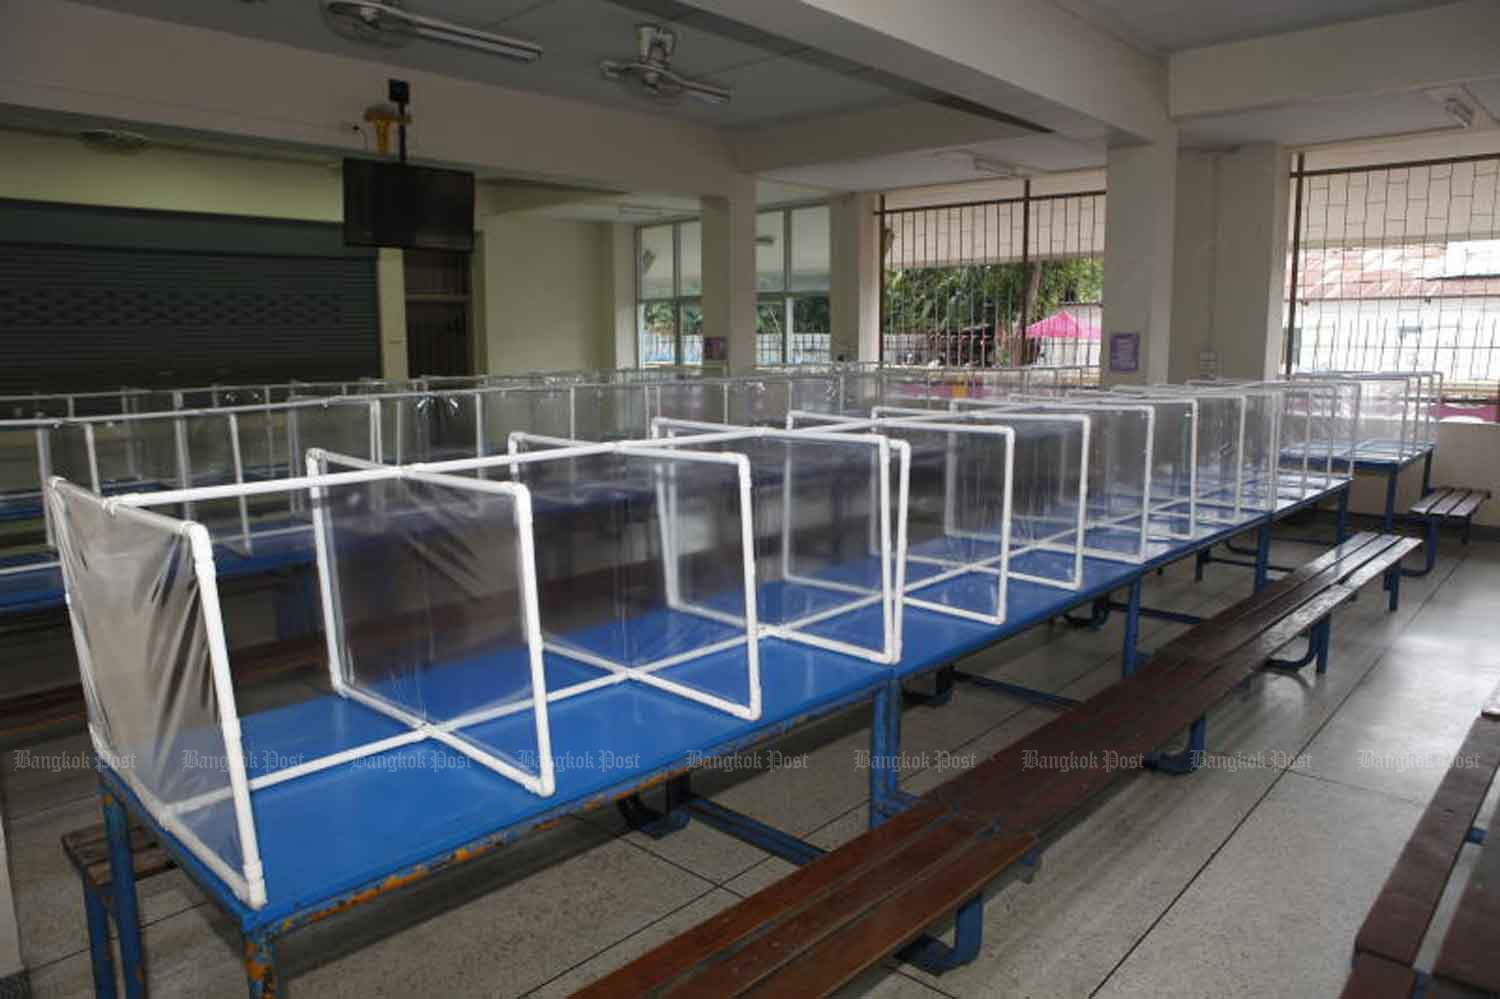 Partitions were installed in the canteen of a school in Sai Mai district of Bangkok to prepare for its reopening amid Covid-19 concerns. (Photo by Nutthawat Wicheanbut)